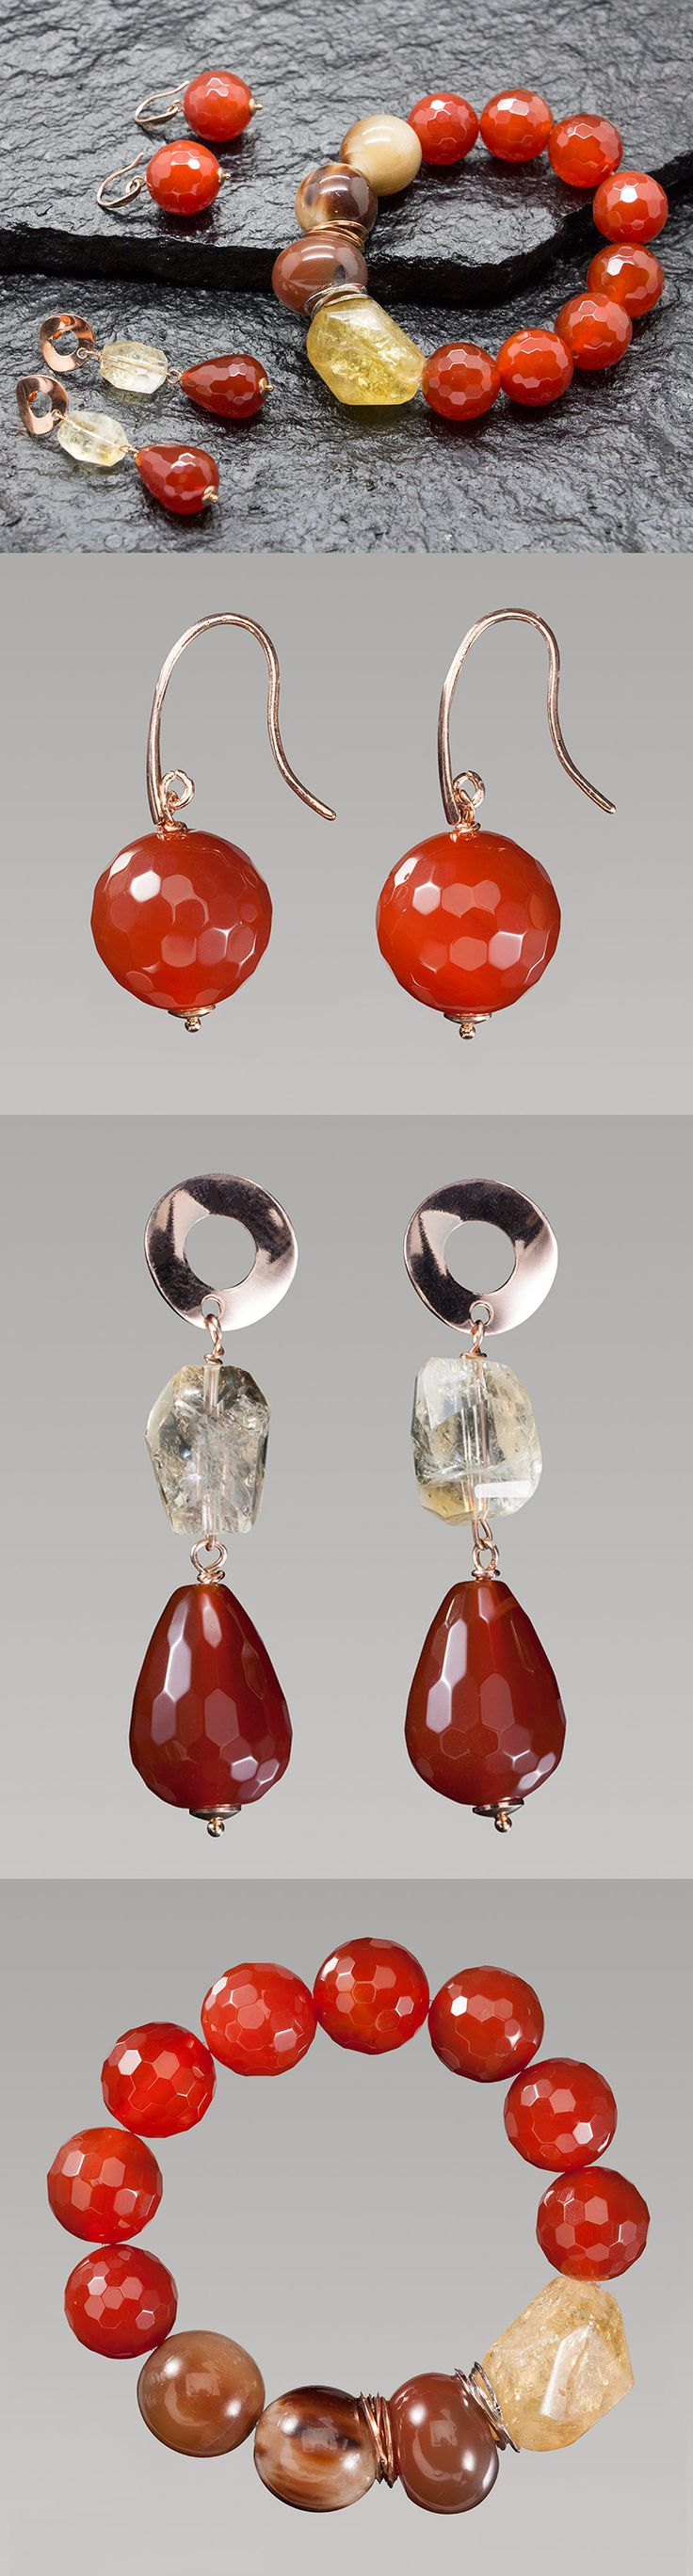 Beautiful earrings and bracelet, all handmade in Italy with natural red stones, silver 925 without Nichel and yellow Citrine. Can find all jewels on our website: http://www.antogioielli.it/